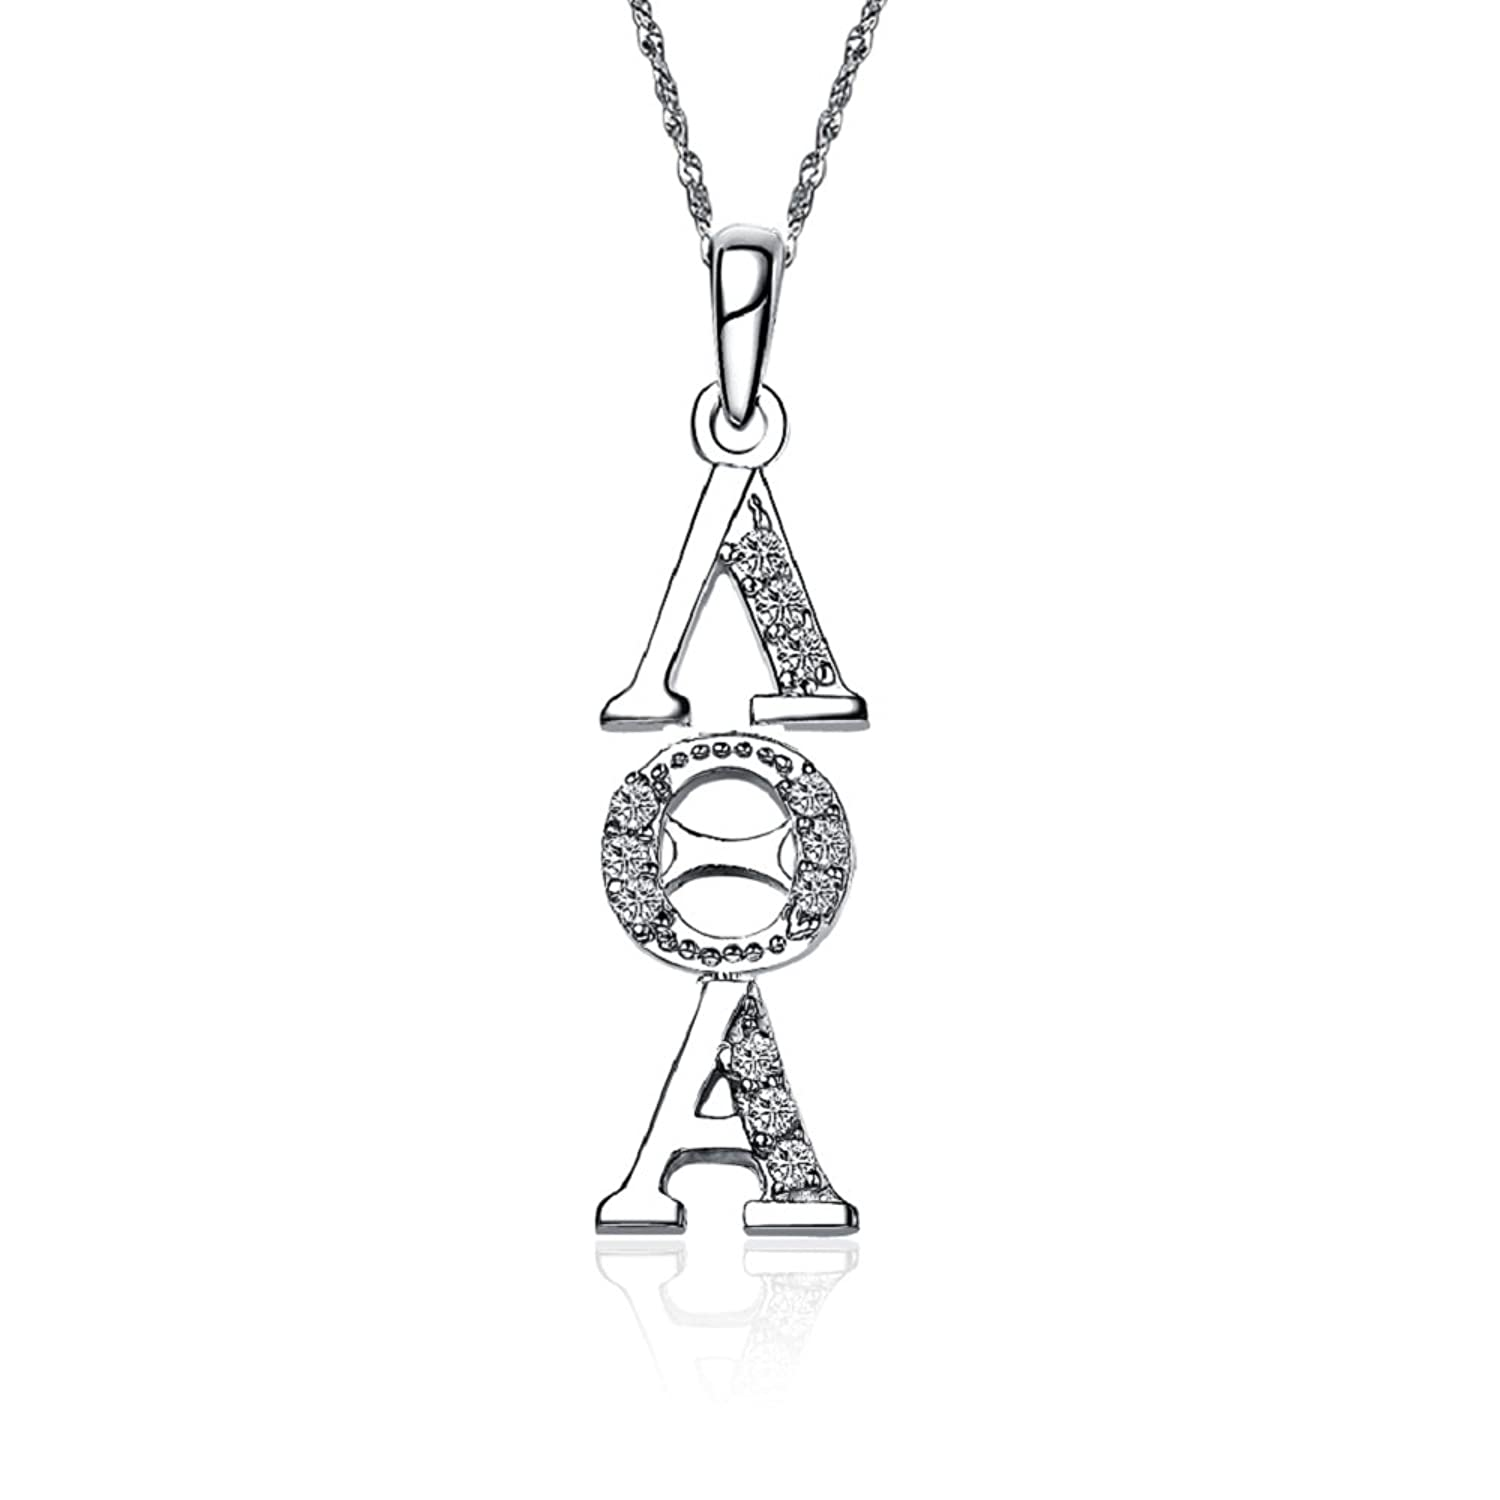 85off Lambda Theta Alpha Necklace With A 18 Silver Chain Lta P001